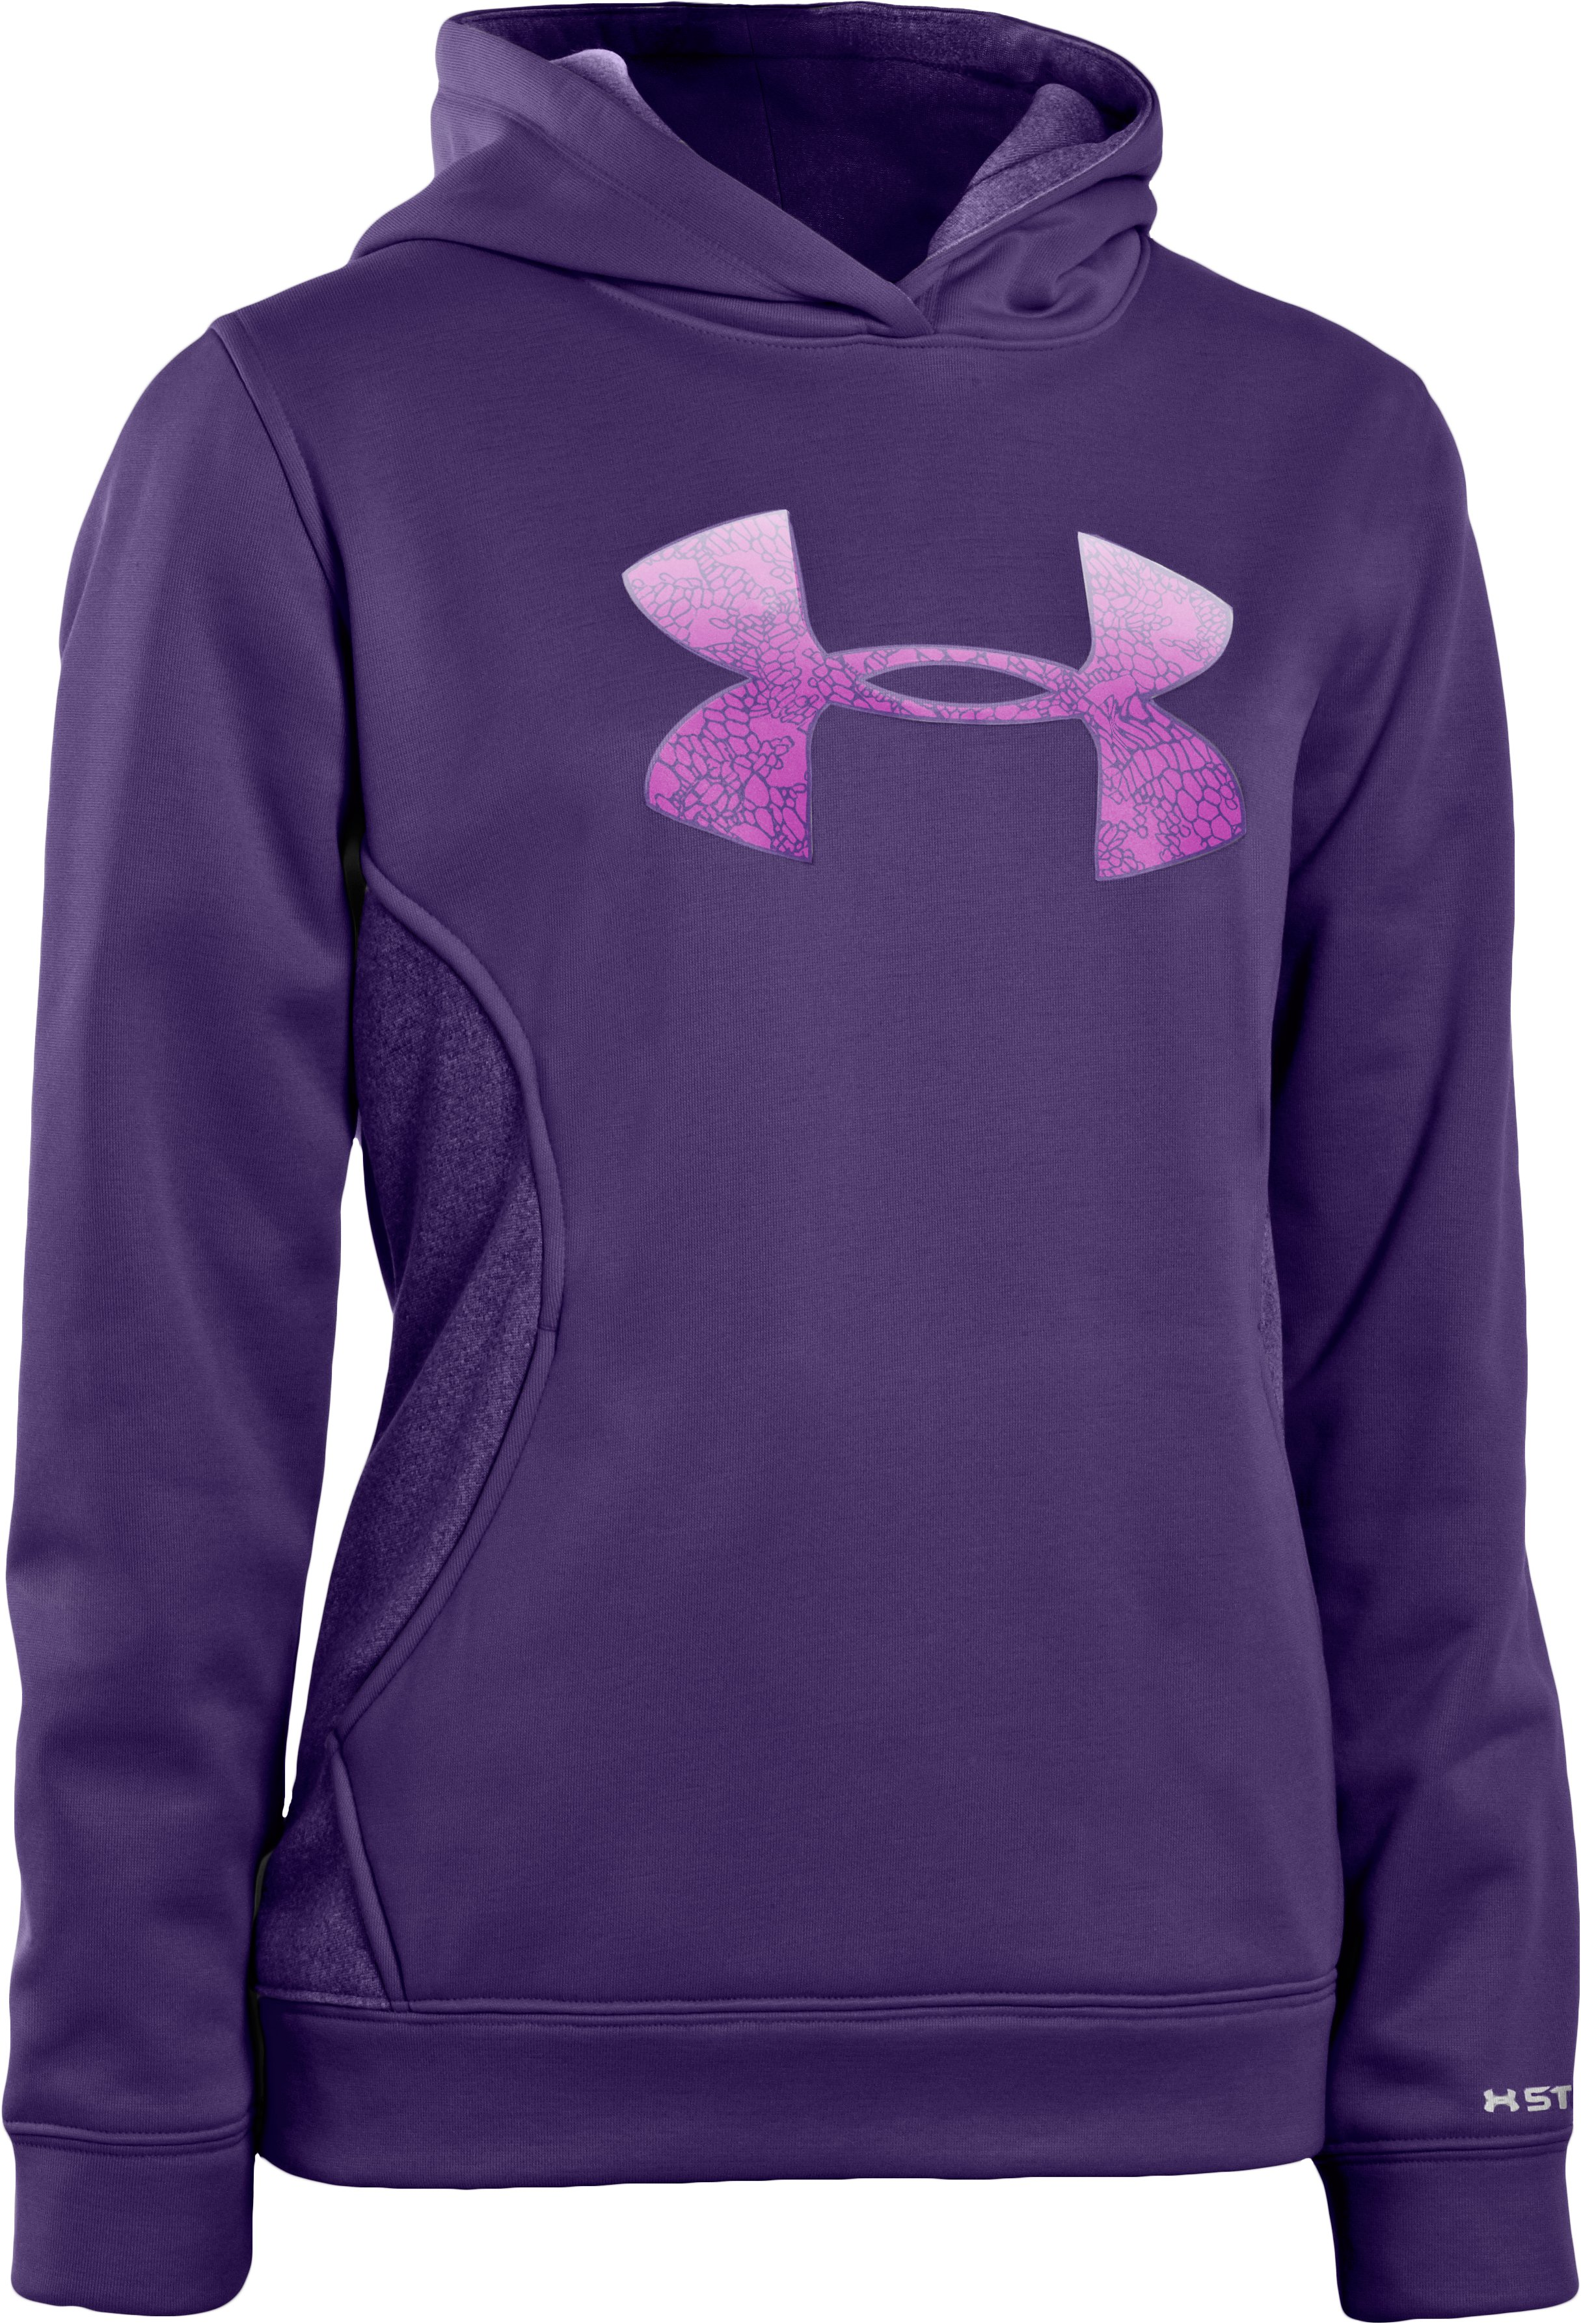 Women's Armour® Fleece Storm Pulse Big Logo Hoodie, Purple Rain